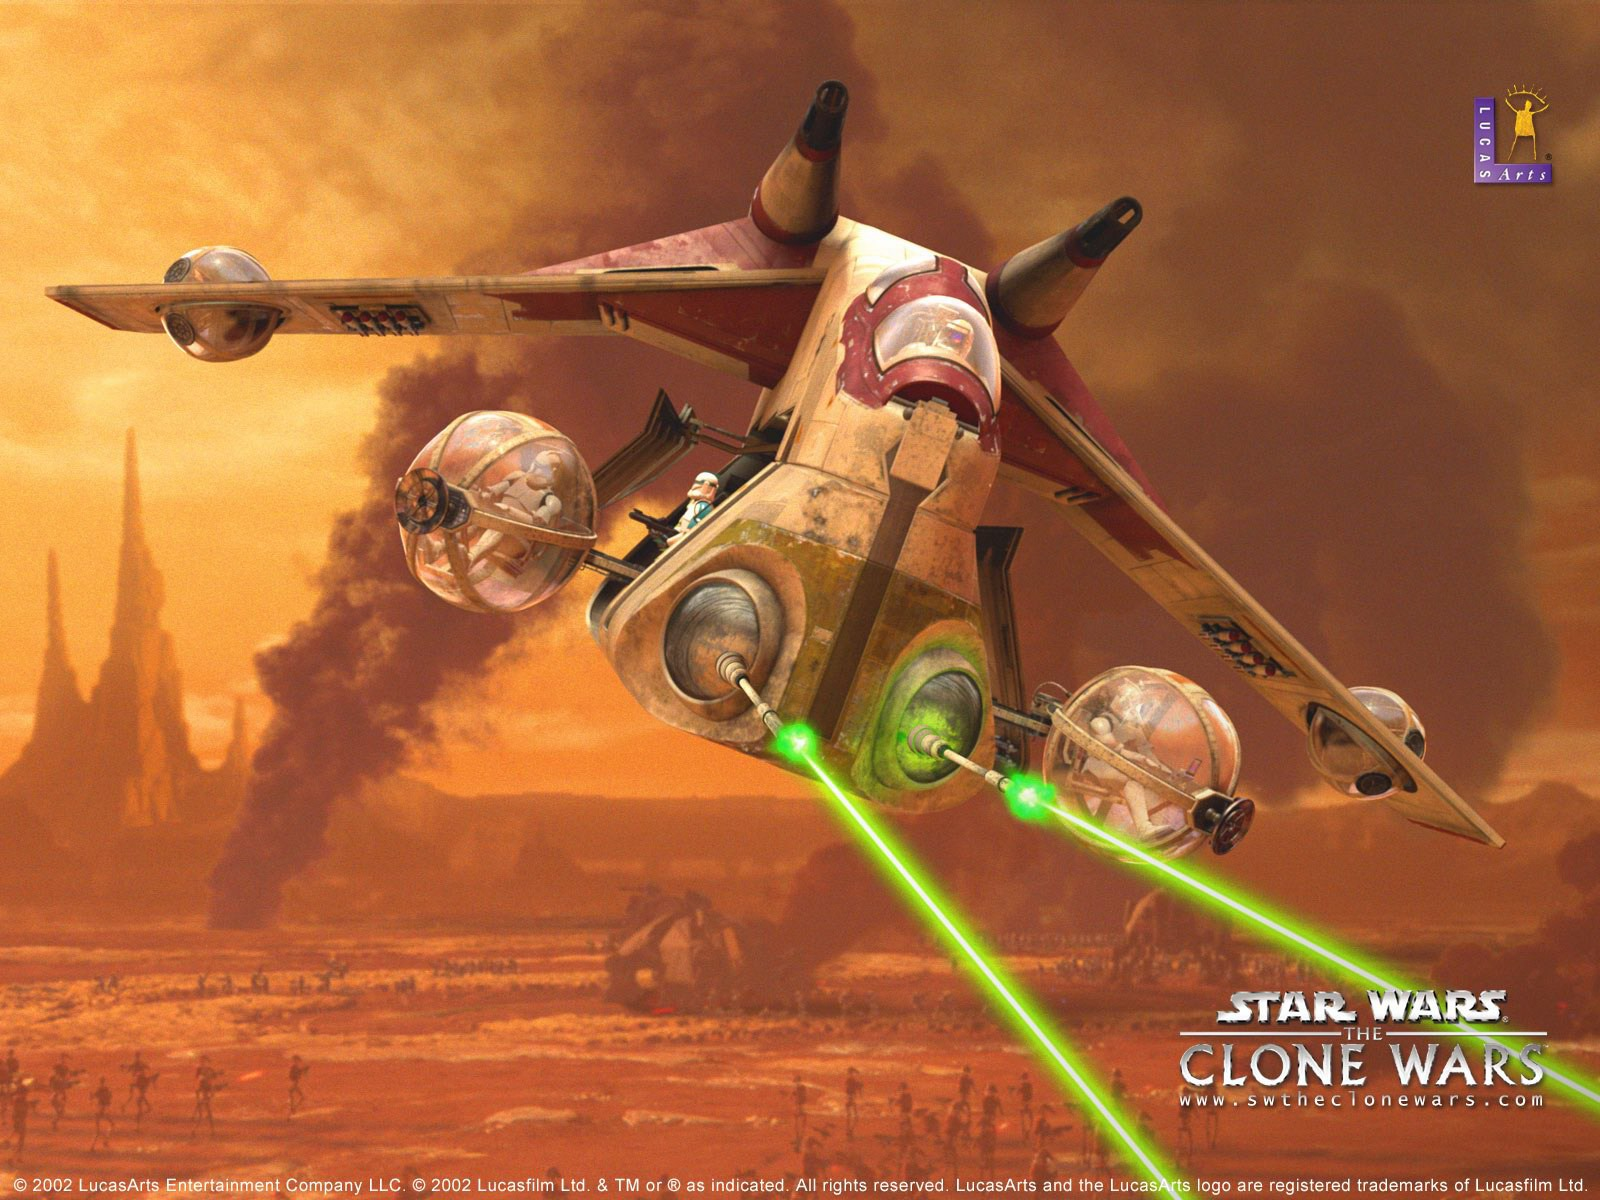 star wars the clone wars aircraft 1 1600 1200 awesome. Black Bedroom Furniture Sets. Home Design Ideas